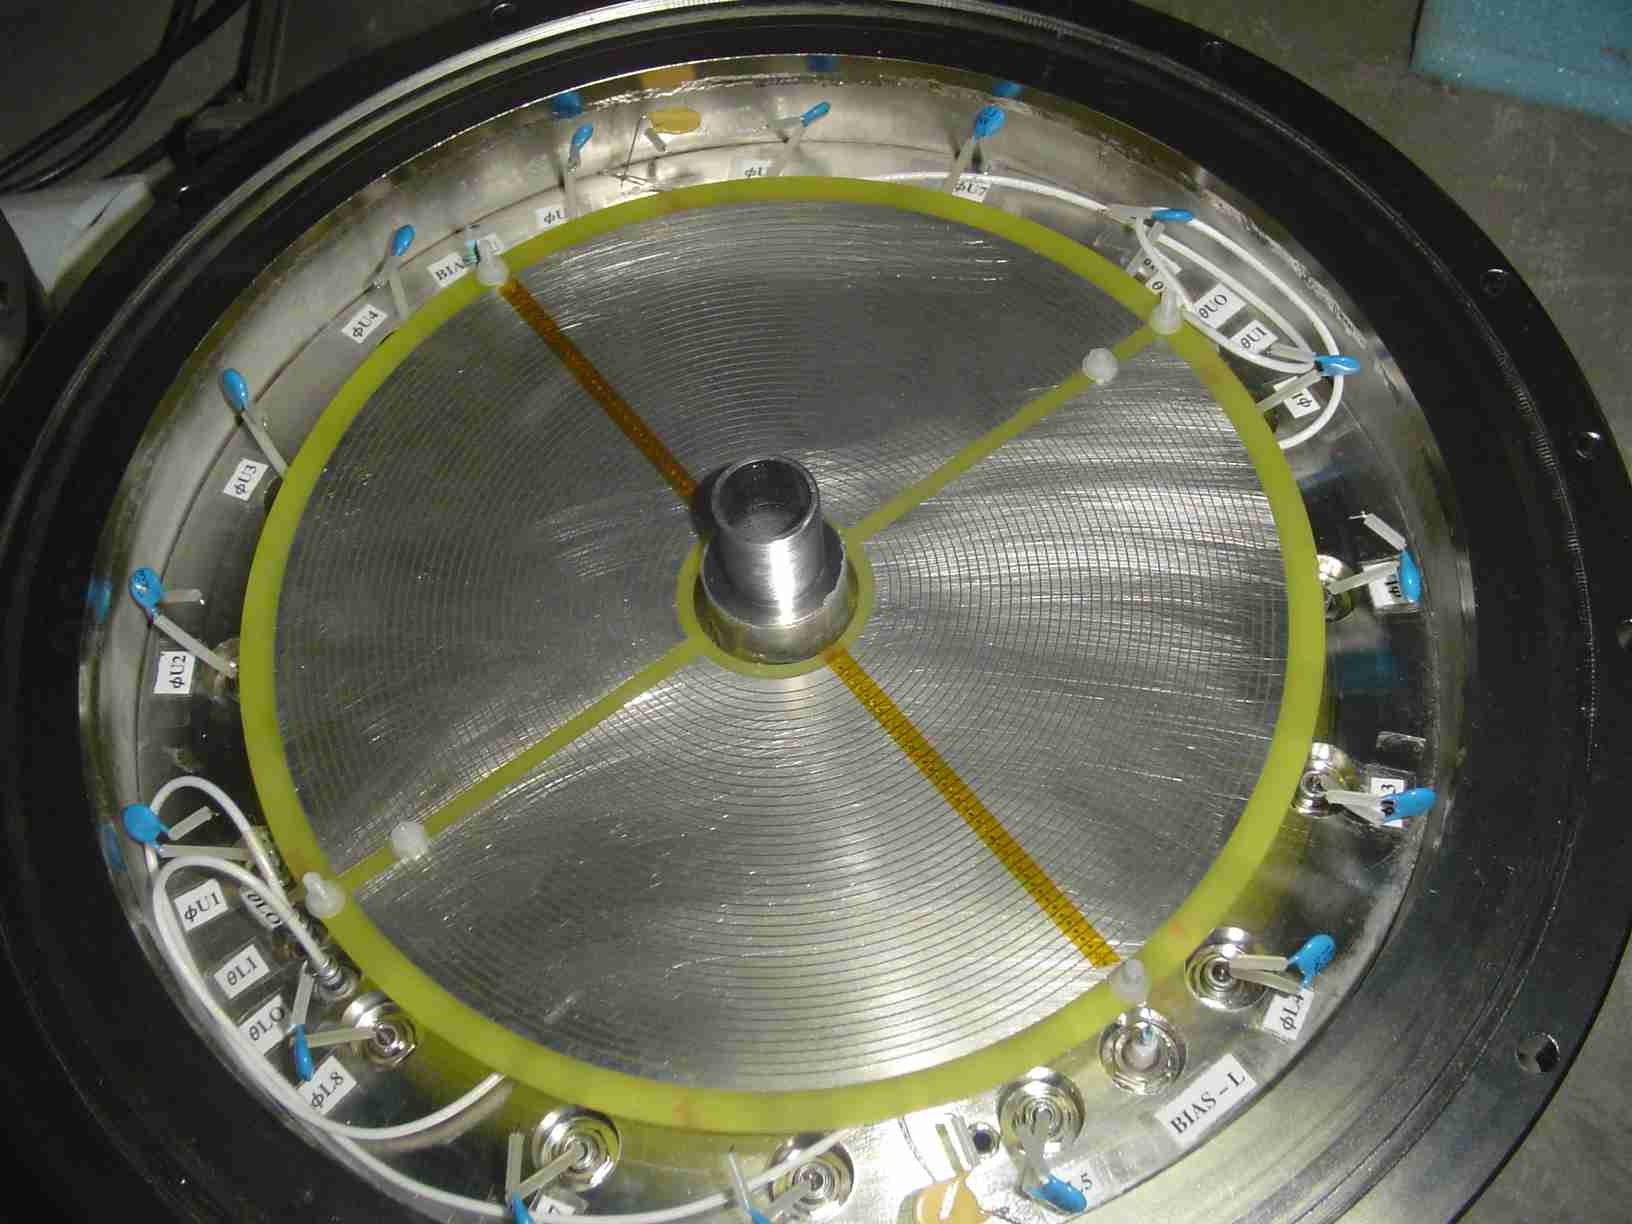 Annular PPAC electrode